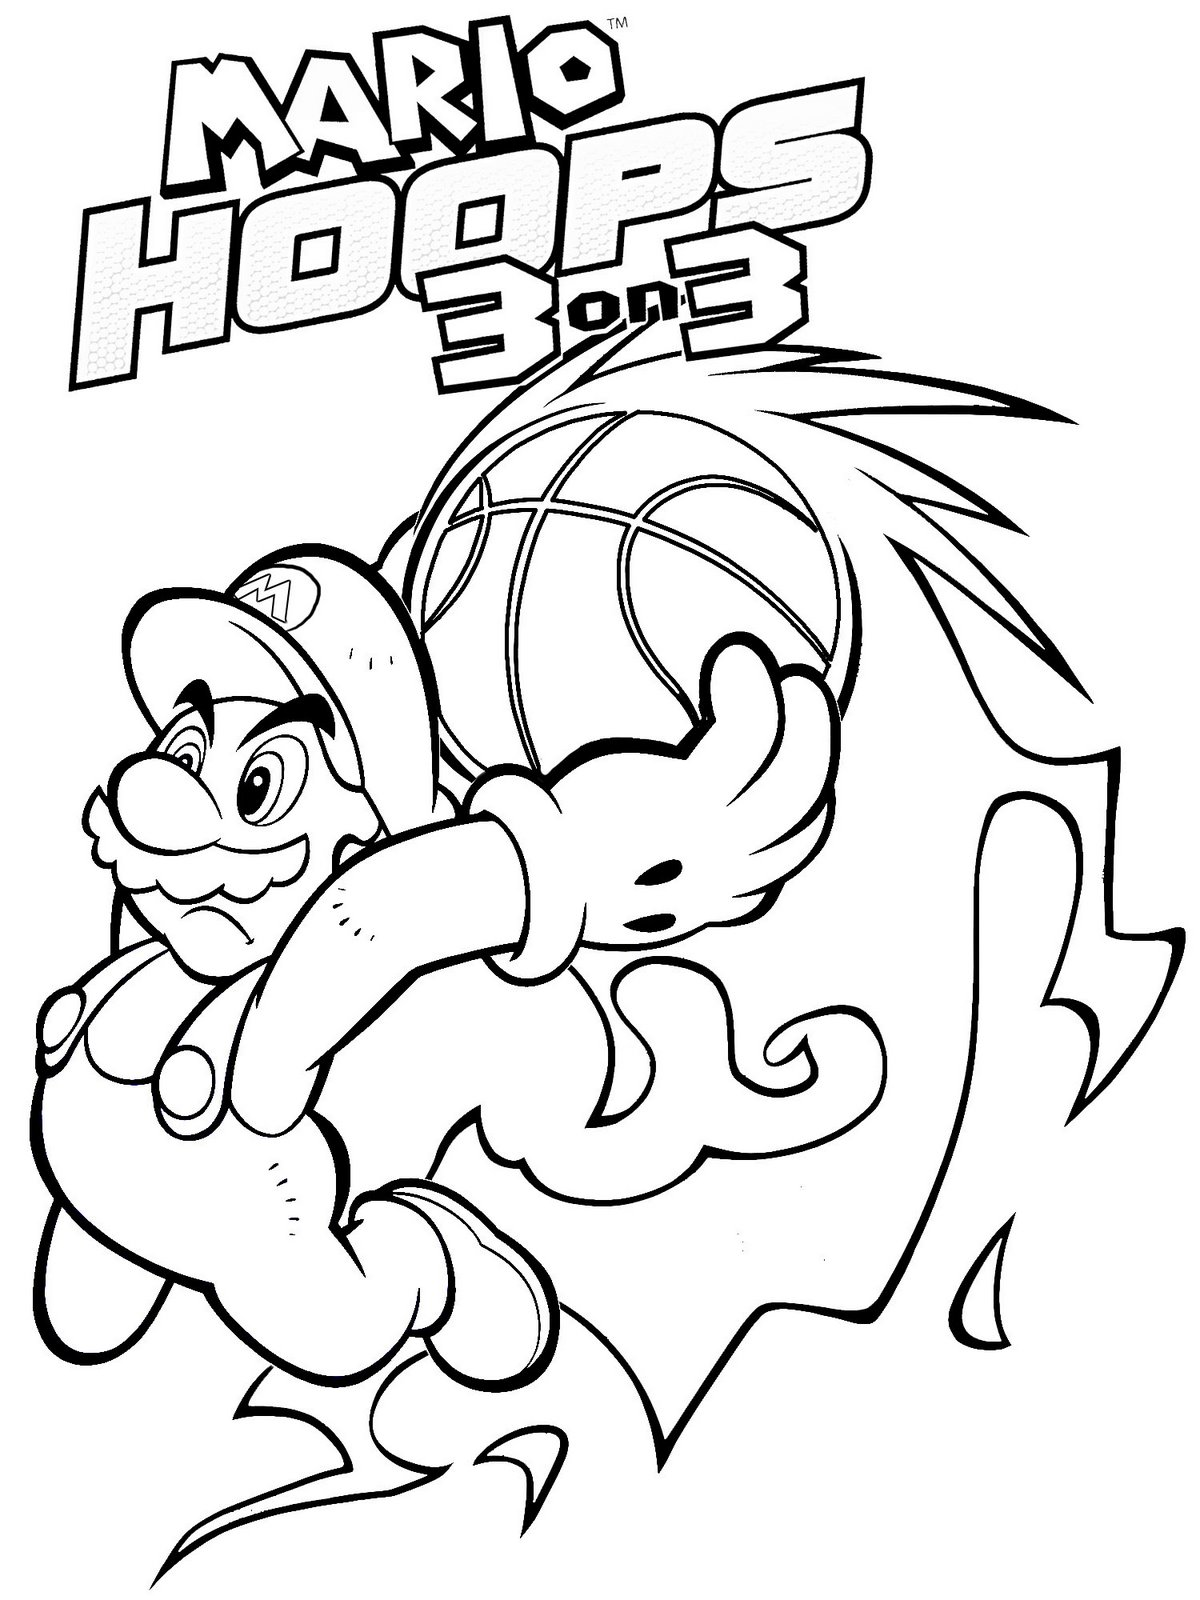 Super Mario 3d World Coloring Pages